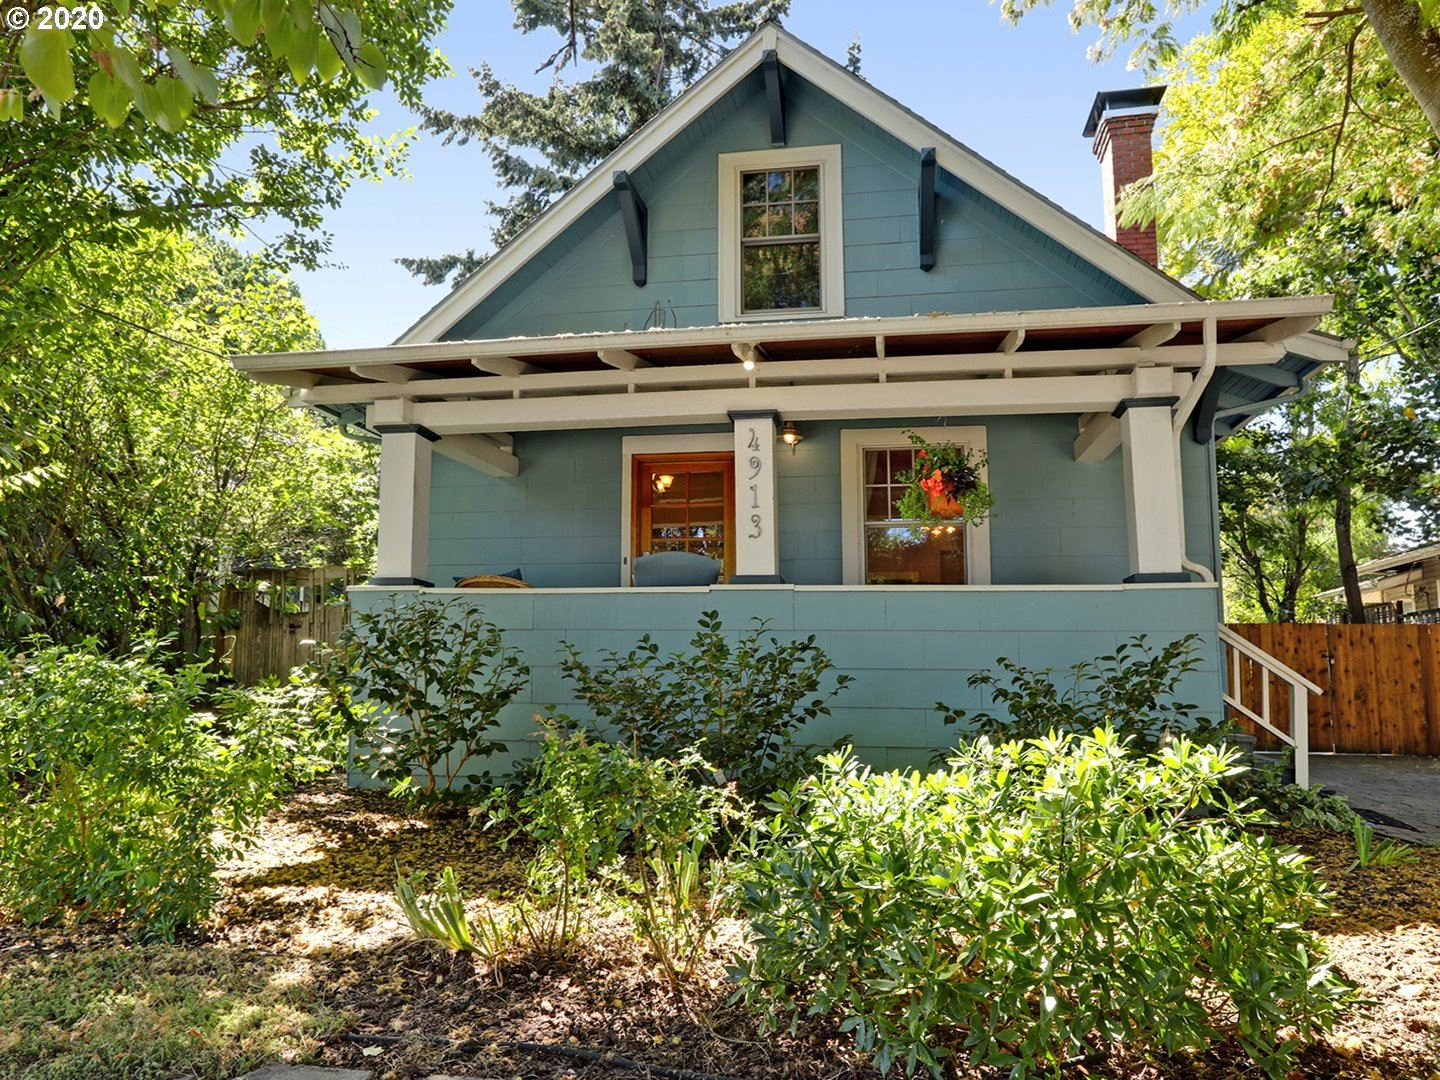 4913 NE 22ND AVE, Portland, OR 97211 - MLS#: 20268451